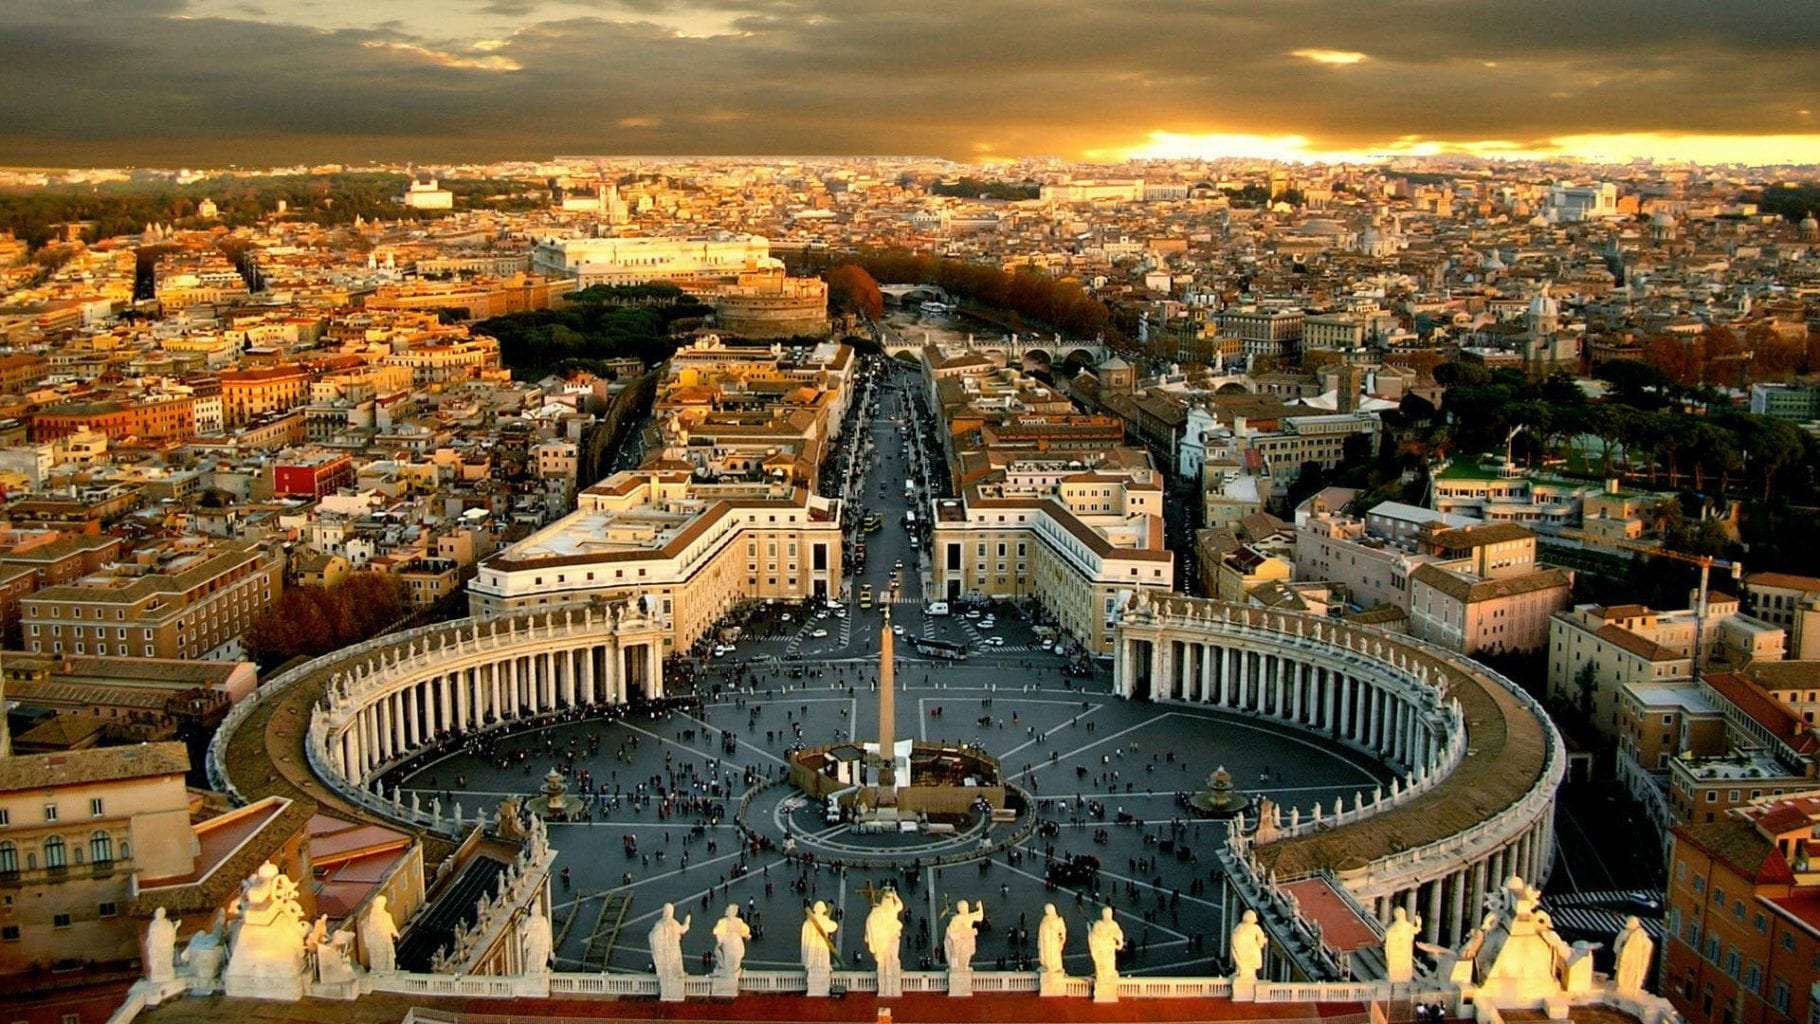 st. peter's peter pope king david bible square piazza vatican Rome pilgrimage tour italy 21st Sunday Ordinary Time A papacy keys to the kingdom Matthew 16